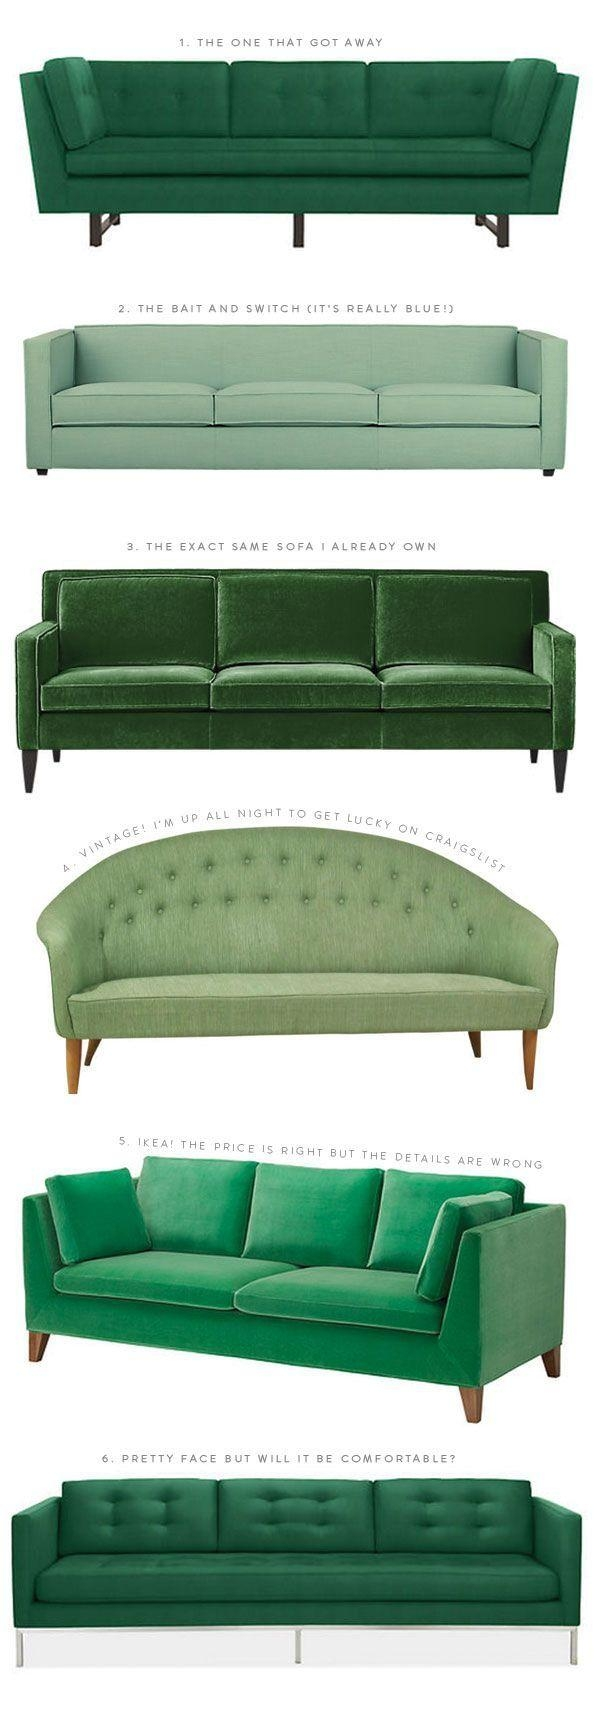 307 Best Sofas & Chairs - Ahhhhh! Images On Pinterest | Sofas with regard to Chintz Fabric Sofas